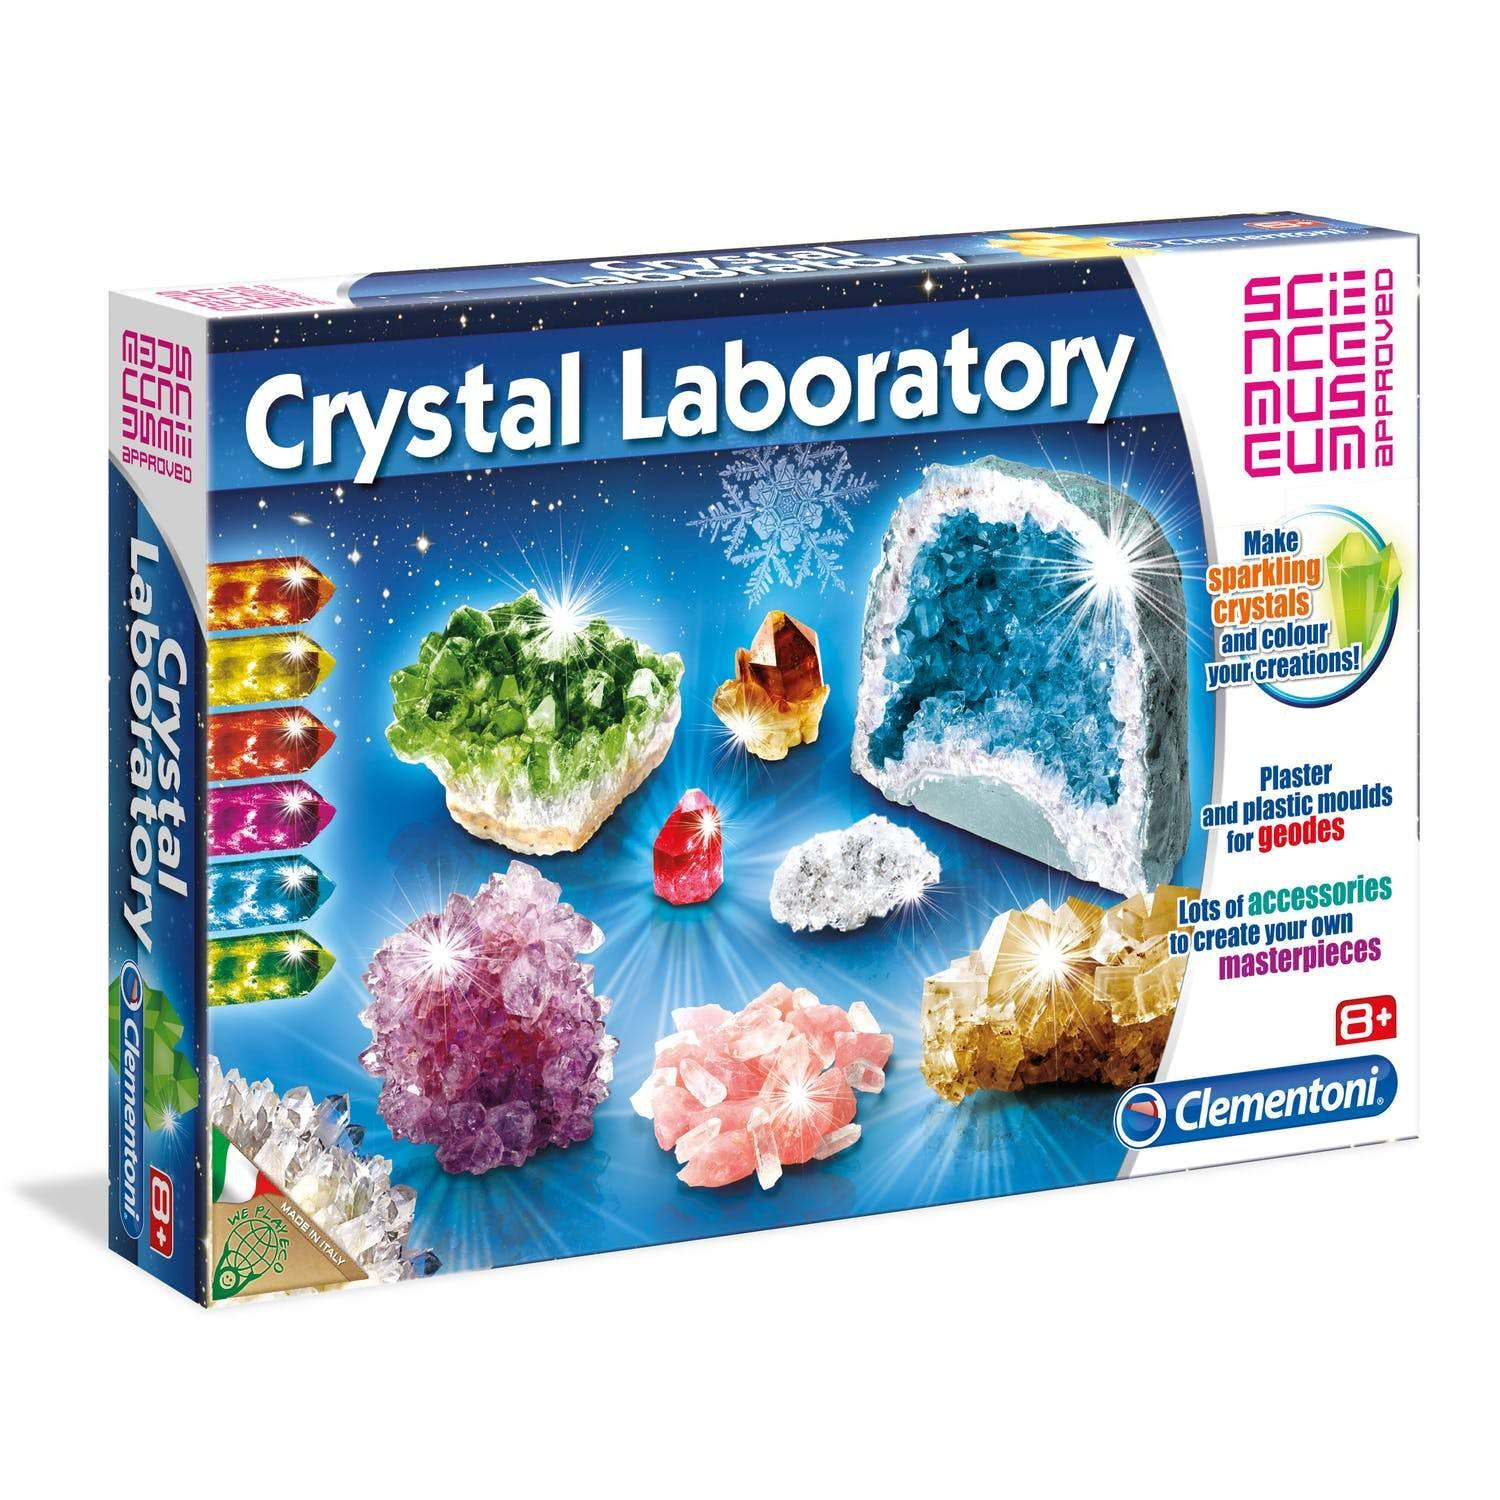 Science Museum Crystal Laboratory Kit